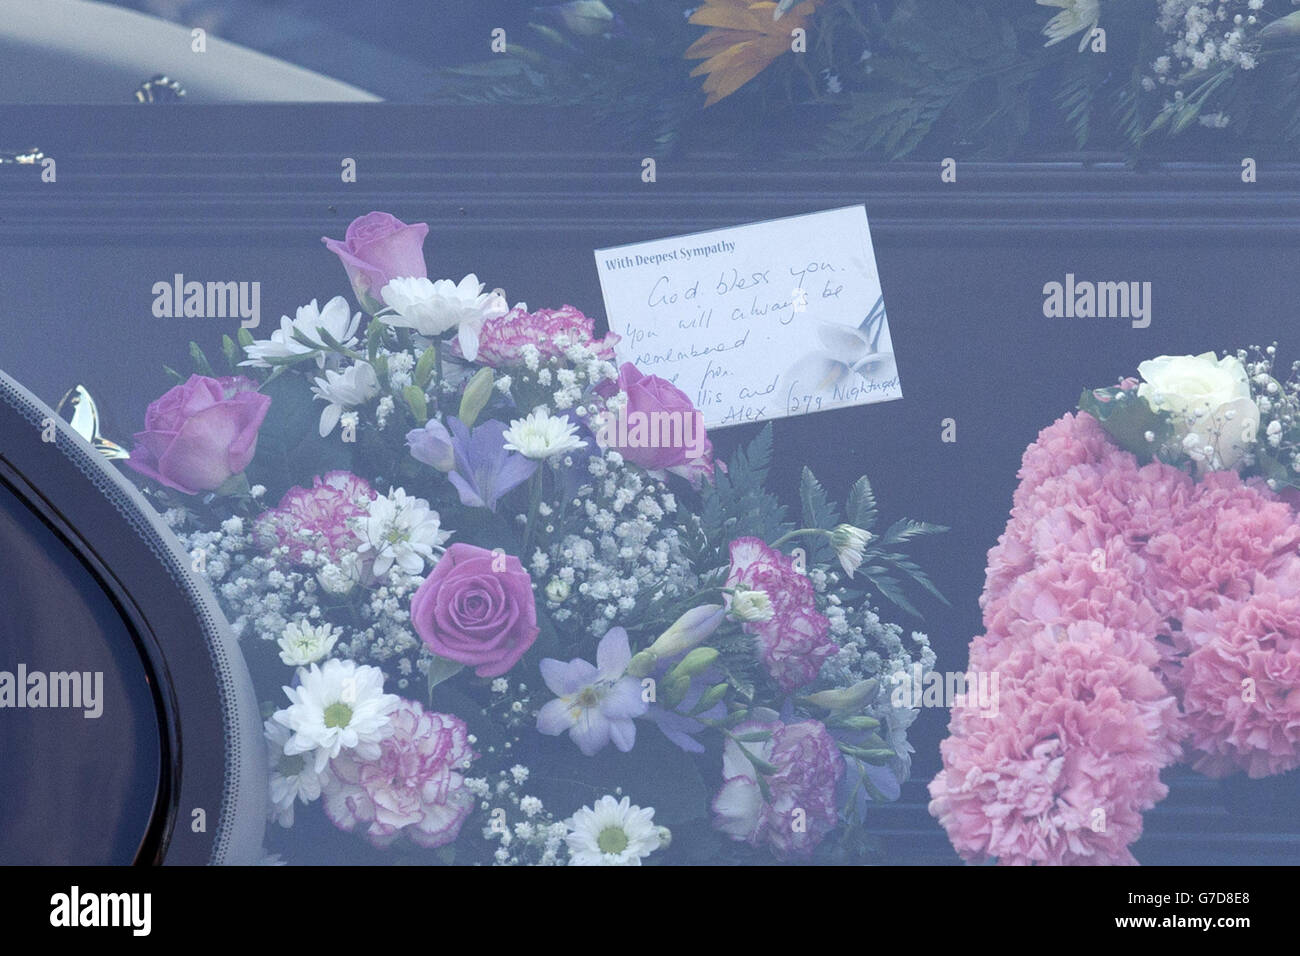 Note flowers lay next to the coffin of palmira silva stock photos search results for note flowers lay next to the coffin of palmira silva stock photos and images izmirmasajfo